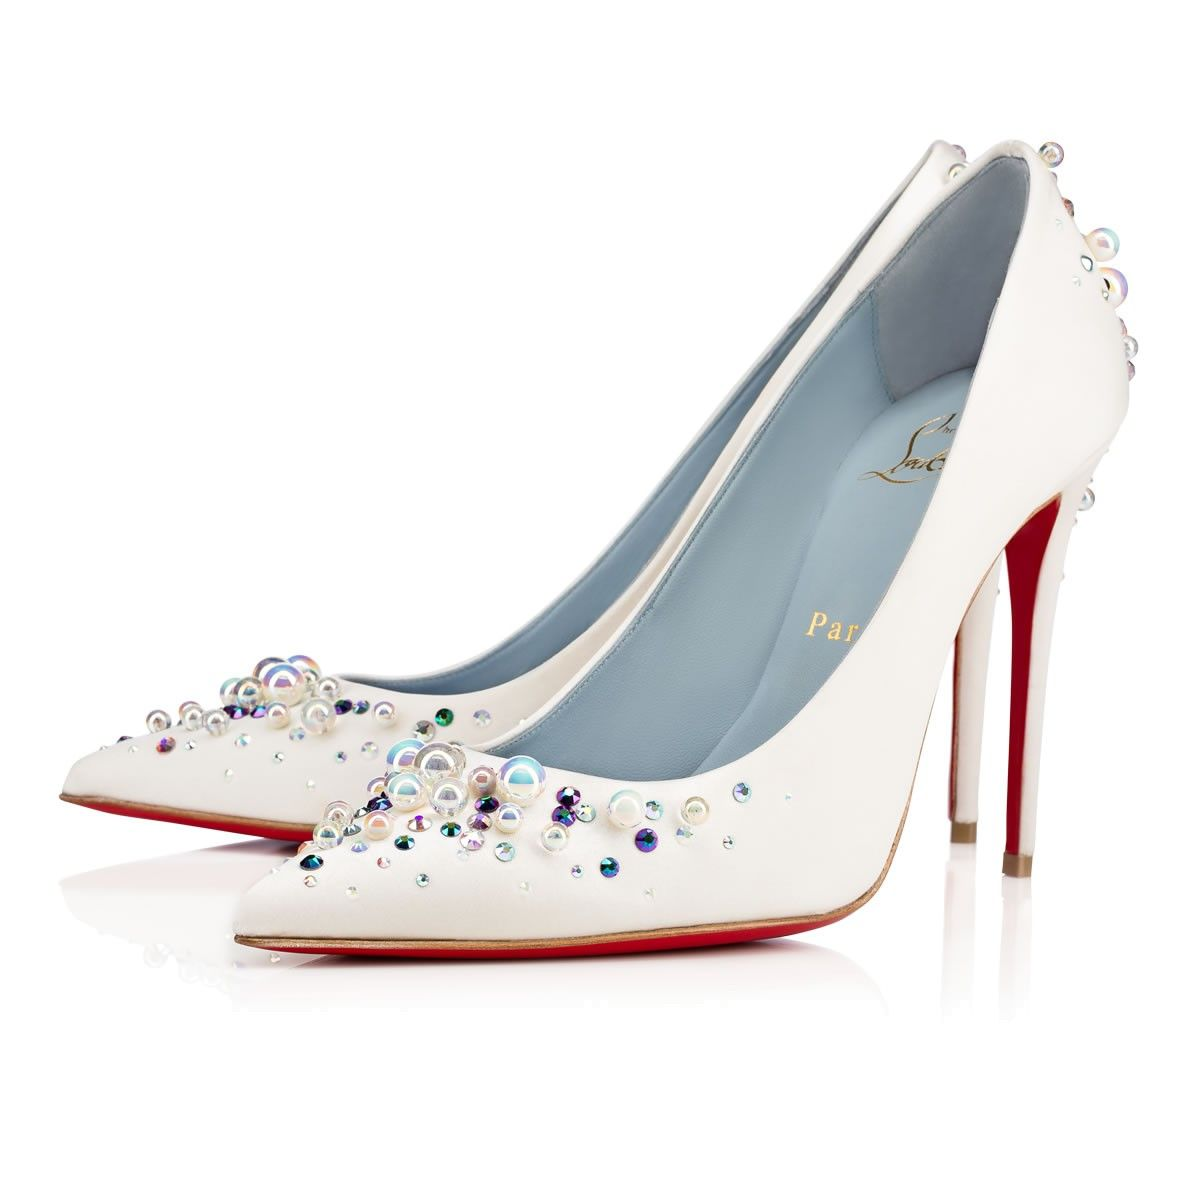 c20b6d76a4b CHRISTIAN LOUBOUTIN CANDIDATE CREPE SATIN 100 Off White Strass - Women Shoes  - Christian Louboutin.  christianlouboutin  shoes